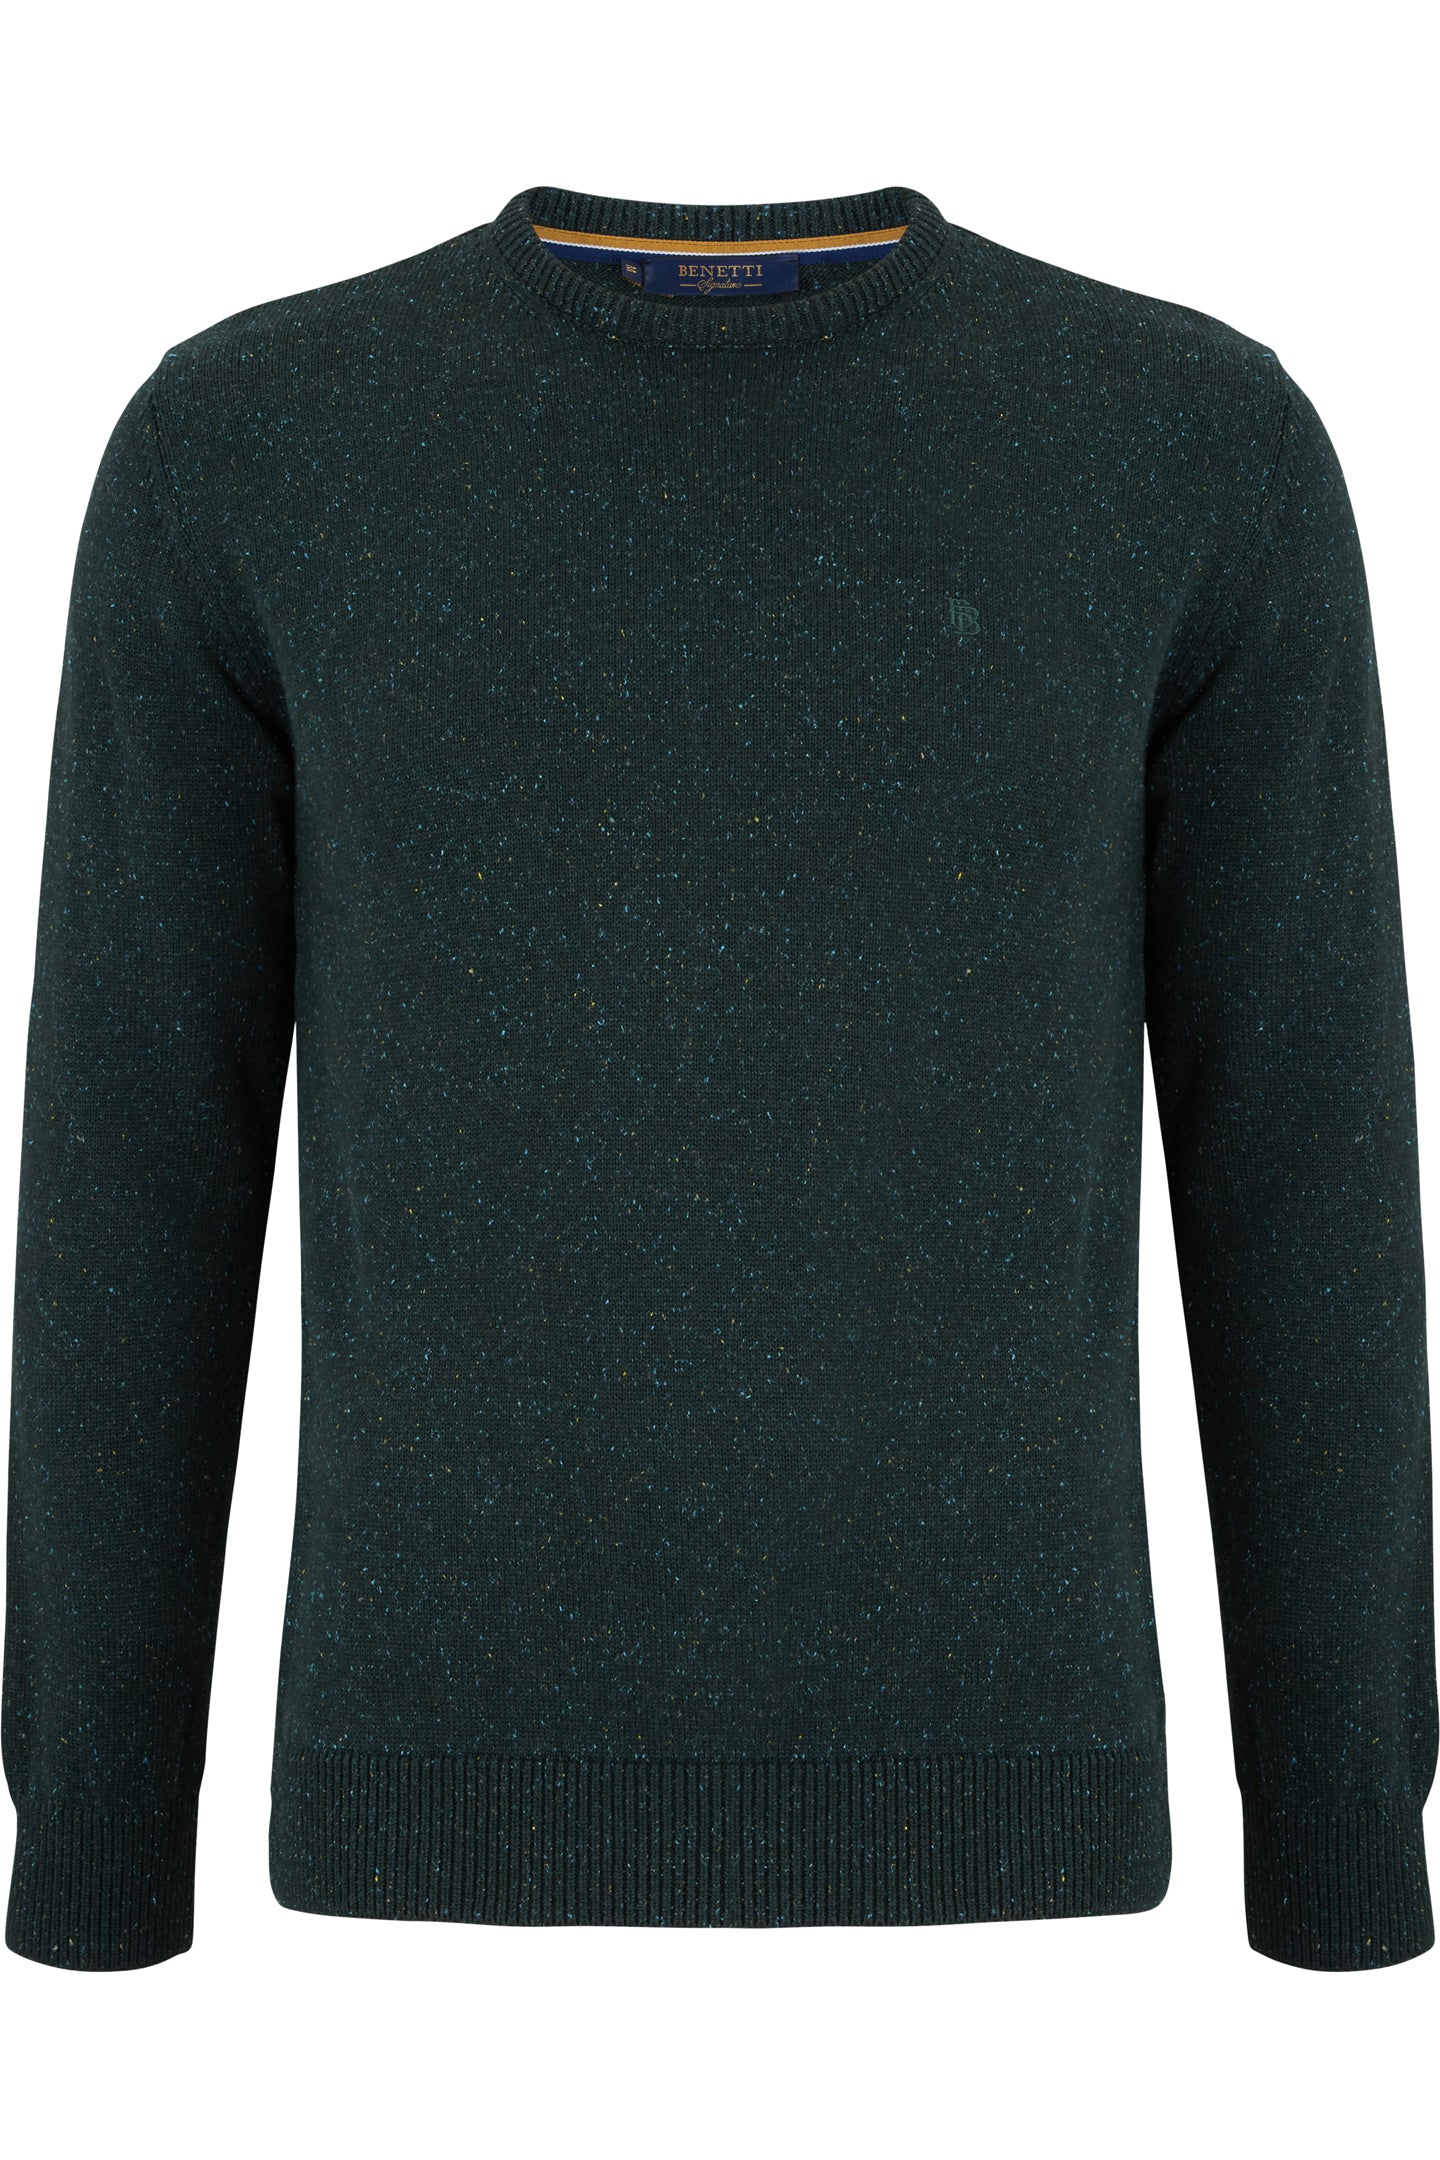 Benetti Nope Crew Neck Sweater